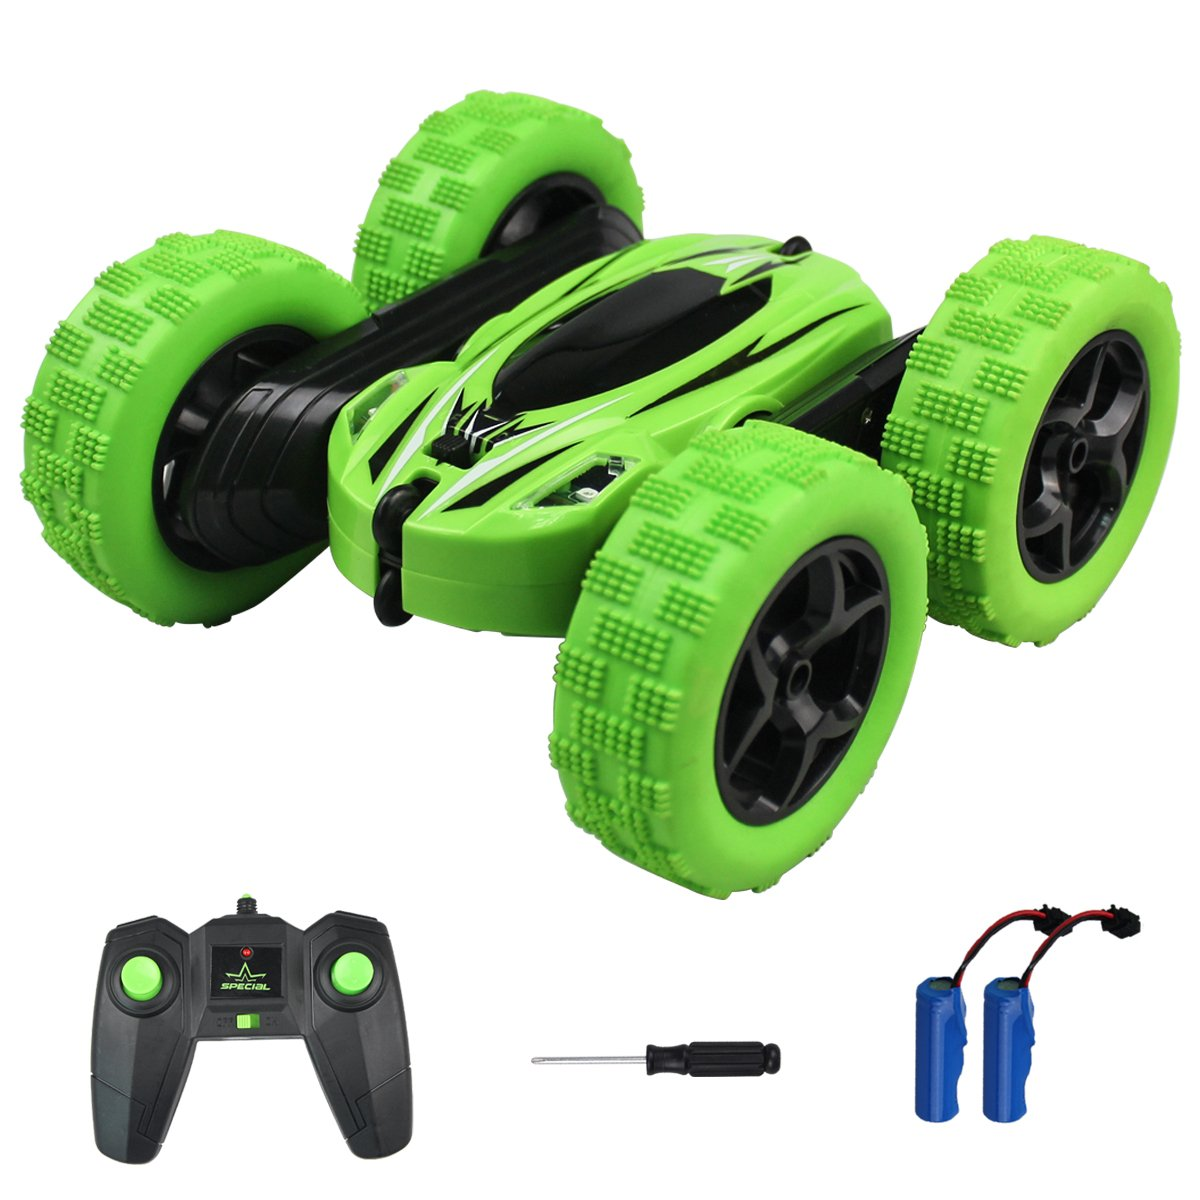 RC Cars Stunt Car Toy, FONXA 4WD 2.4Ghz Remote Control Car Double-Sided Rotating Vehicles 360 Degree Flips, Kids Toy Cars for Boys Girls Birthday